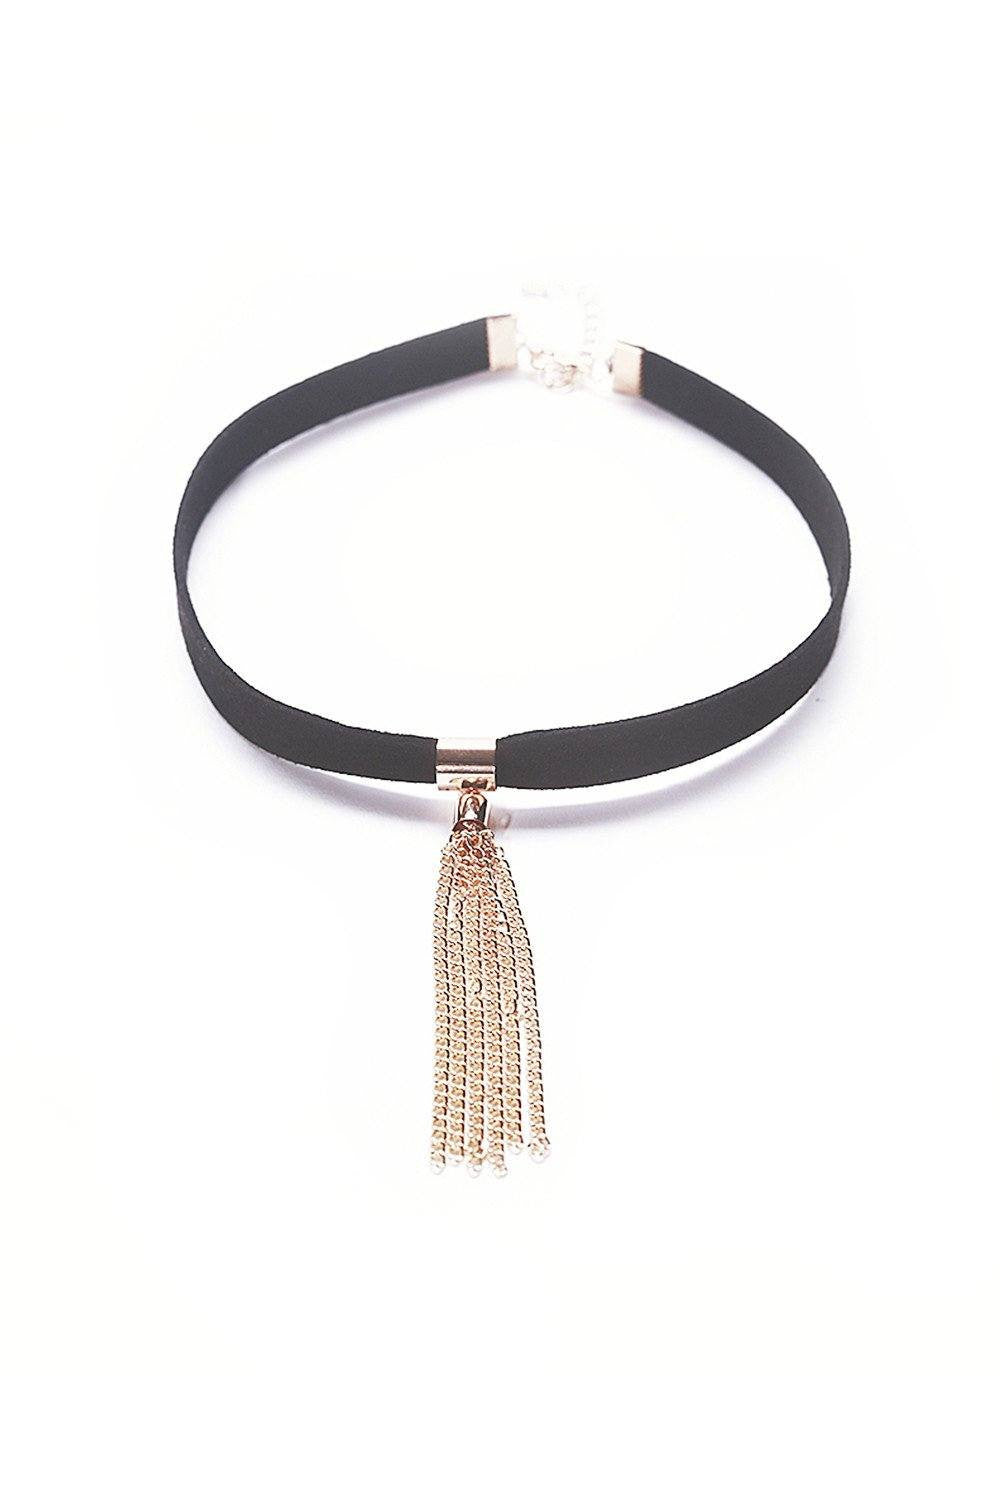 Gold Long Tassel Black Choker - Ciduire